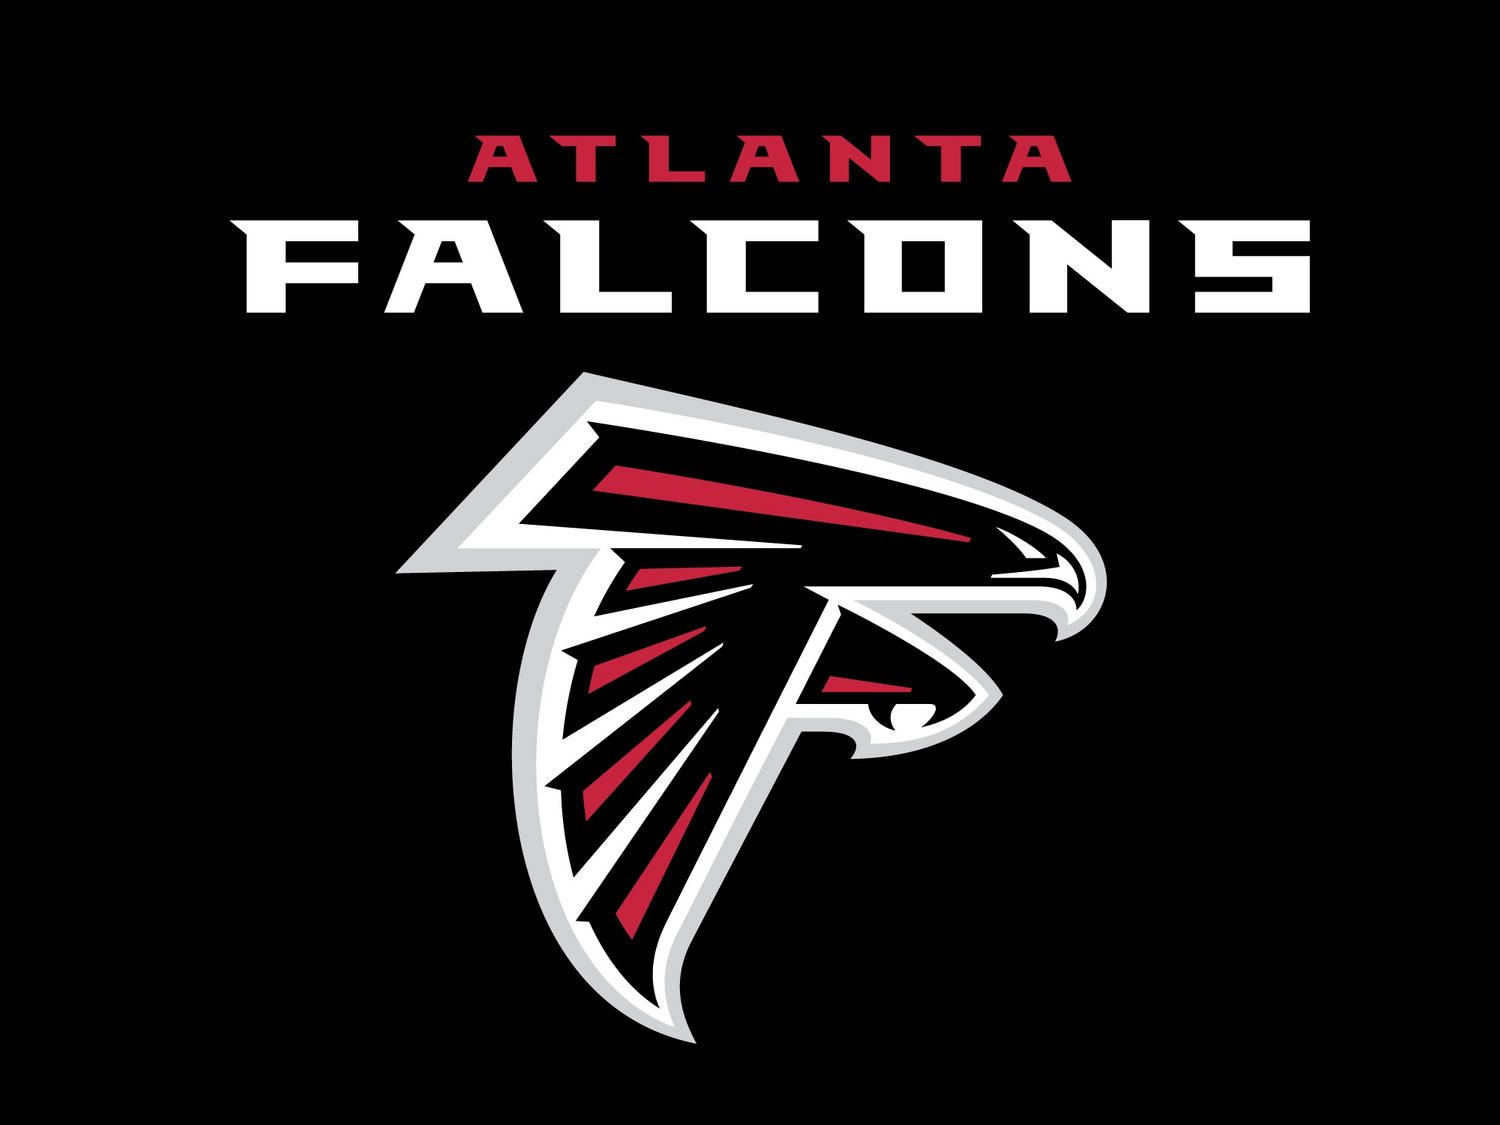 Atlanta Falcons Images: ATLANTA FALCONS SELECTION NFL Draft 2015